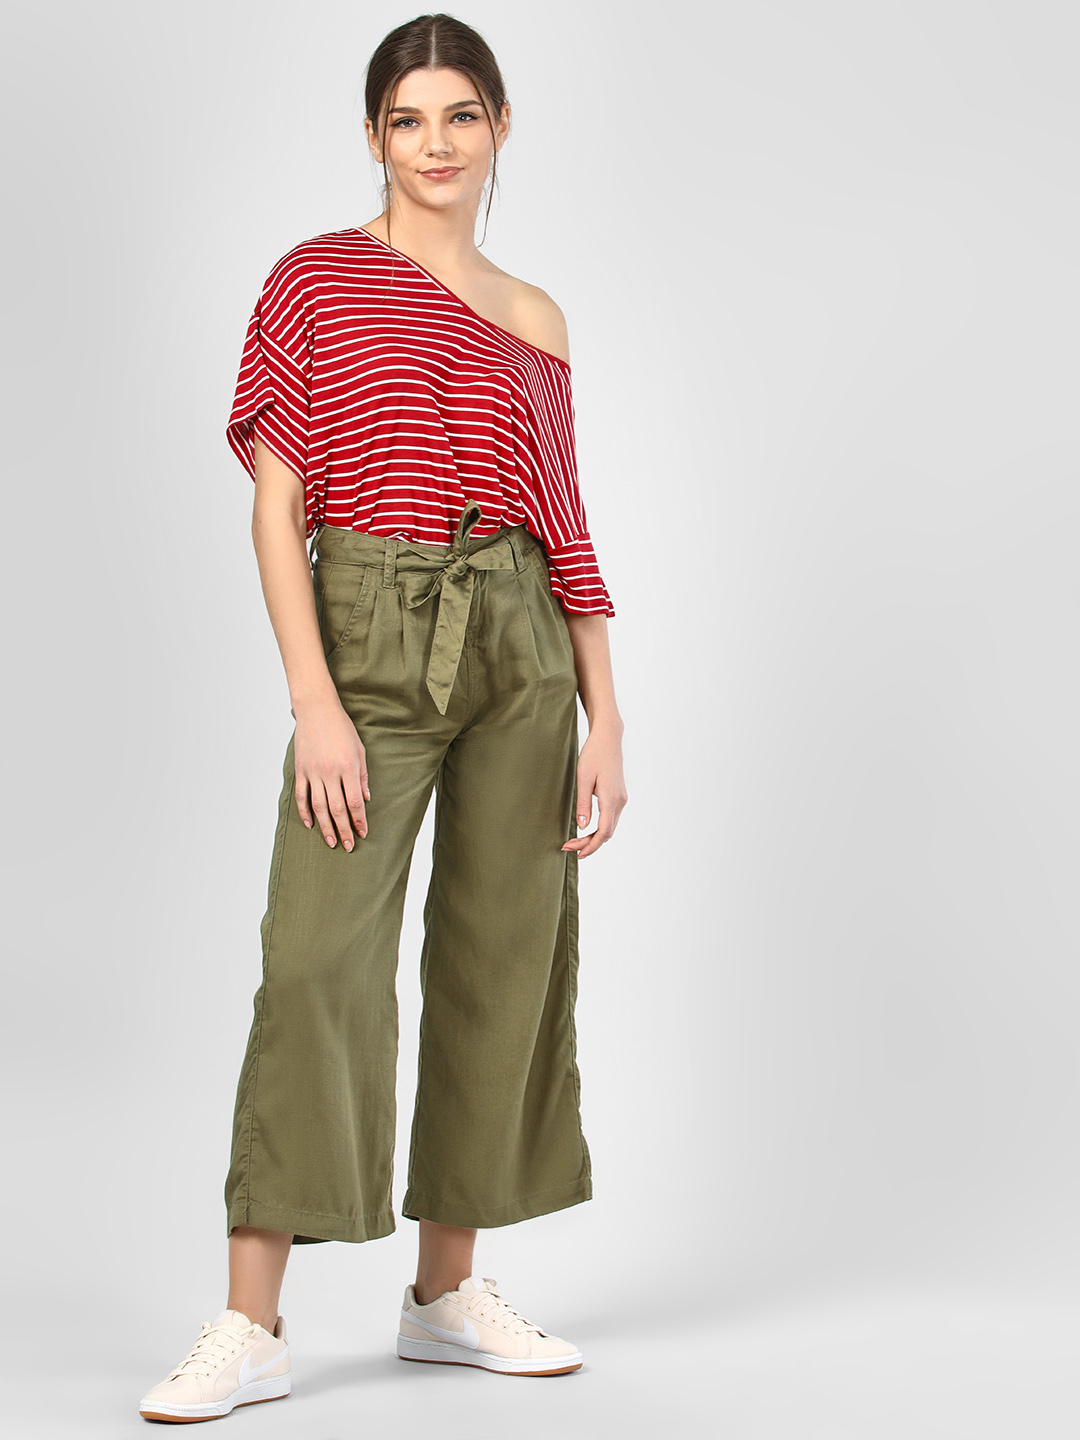 RIG Olive Flared Olive Pants With Tie-Up 1